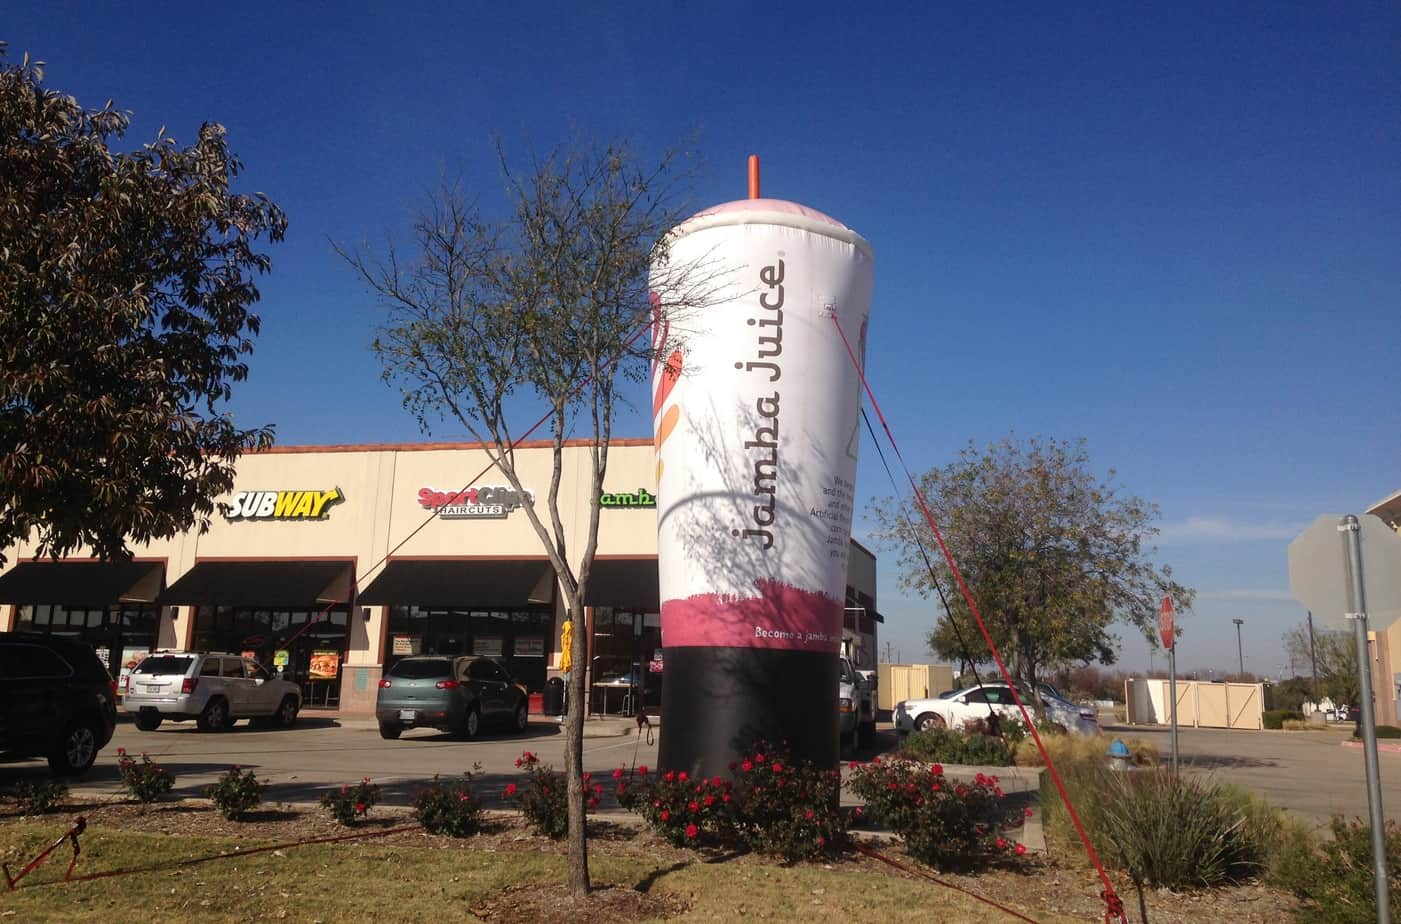 advertising budgets should shift to inflatable advertising